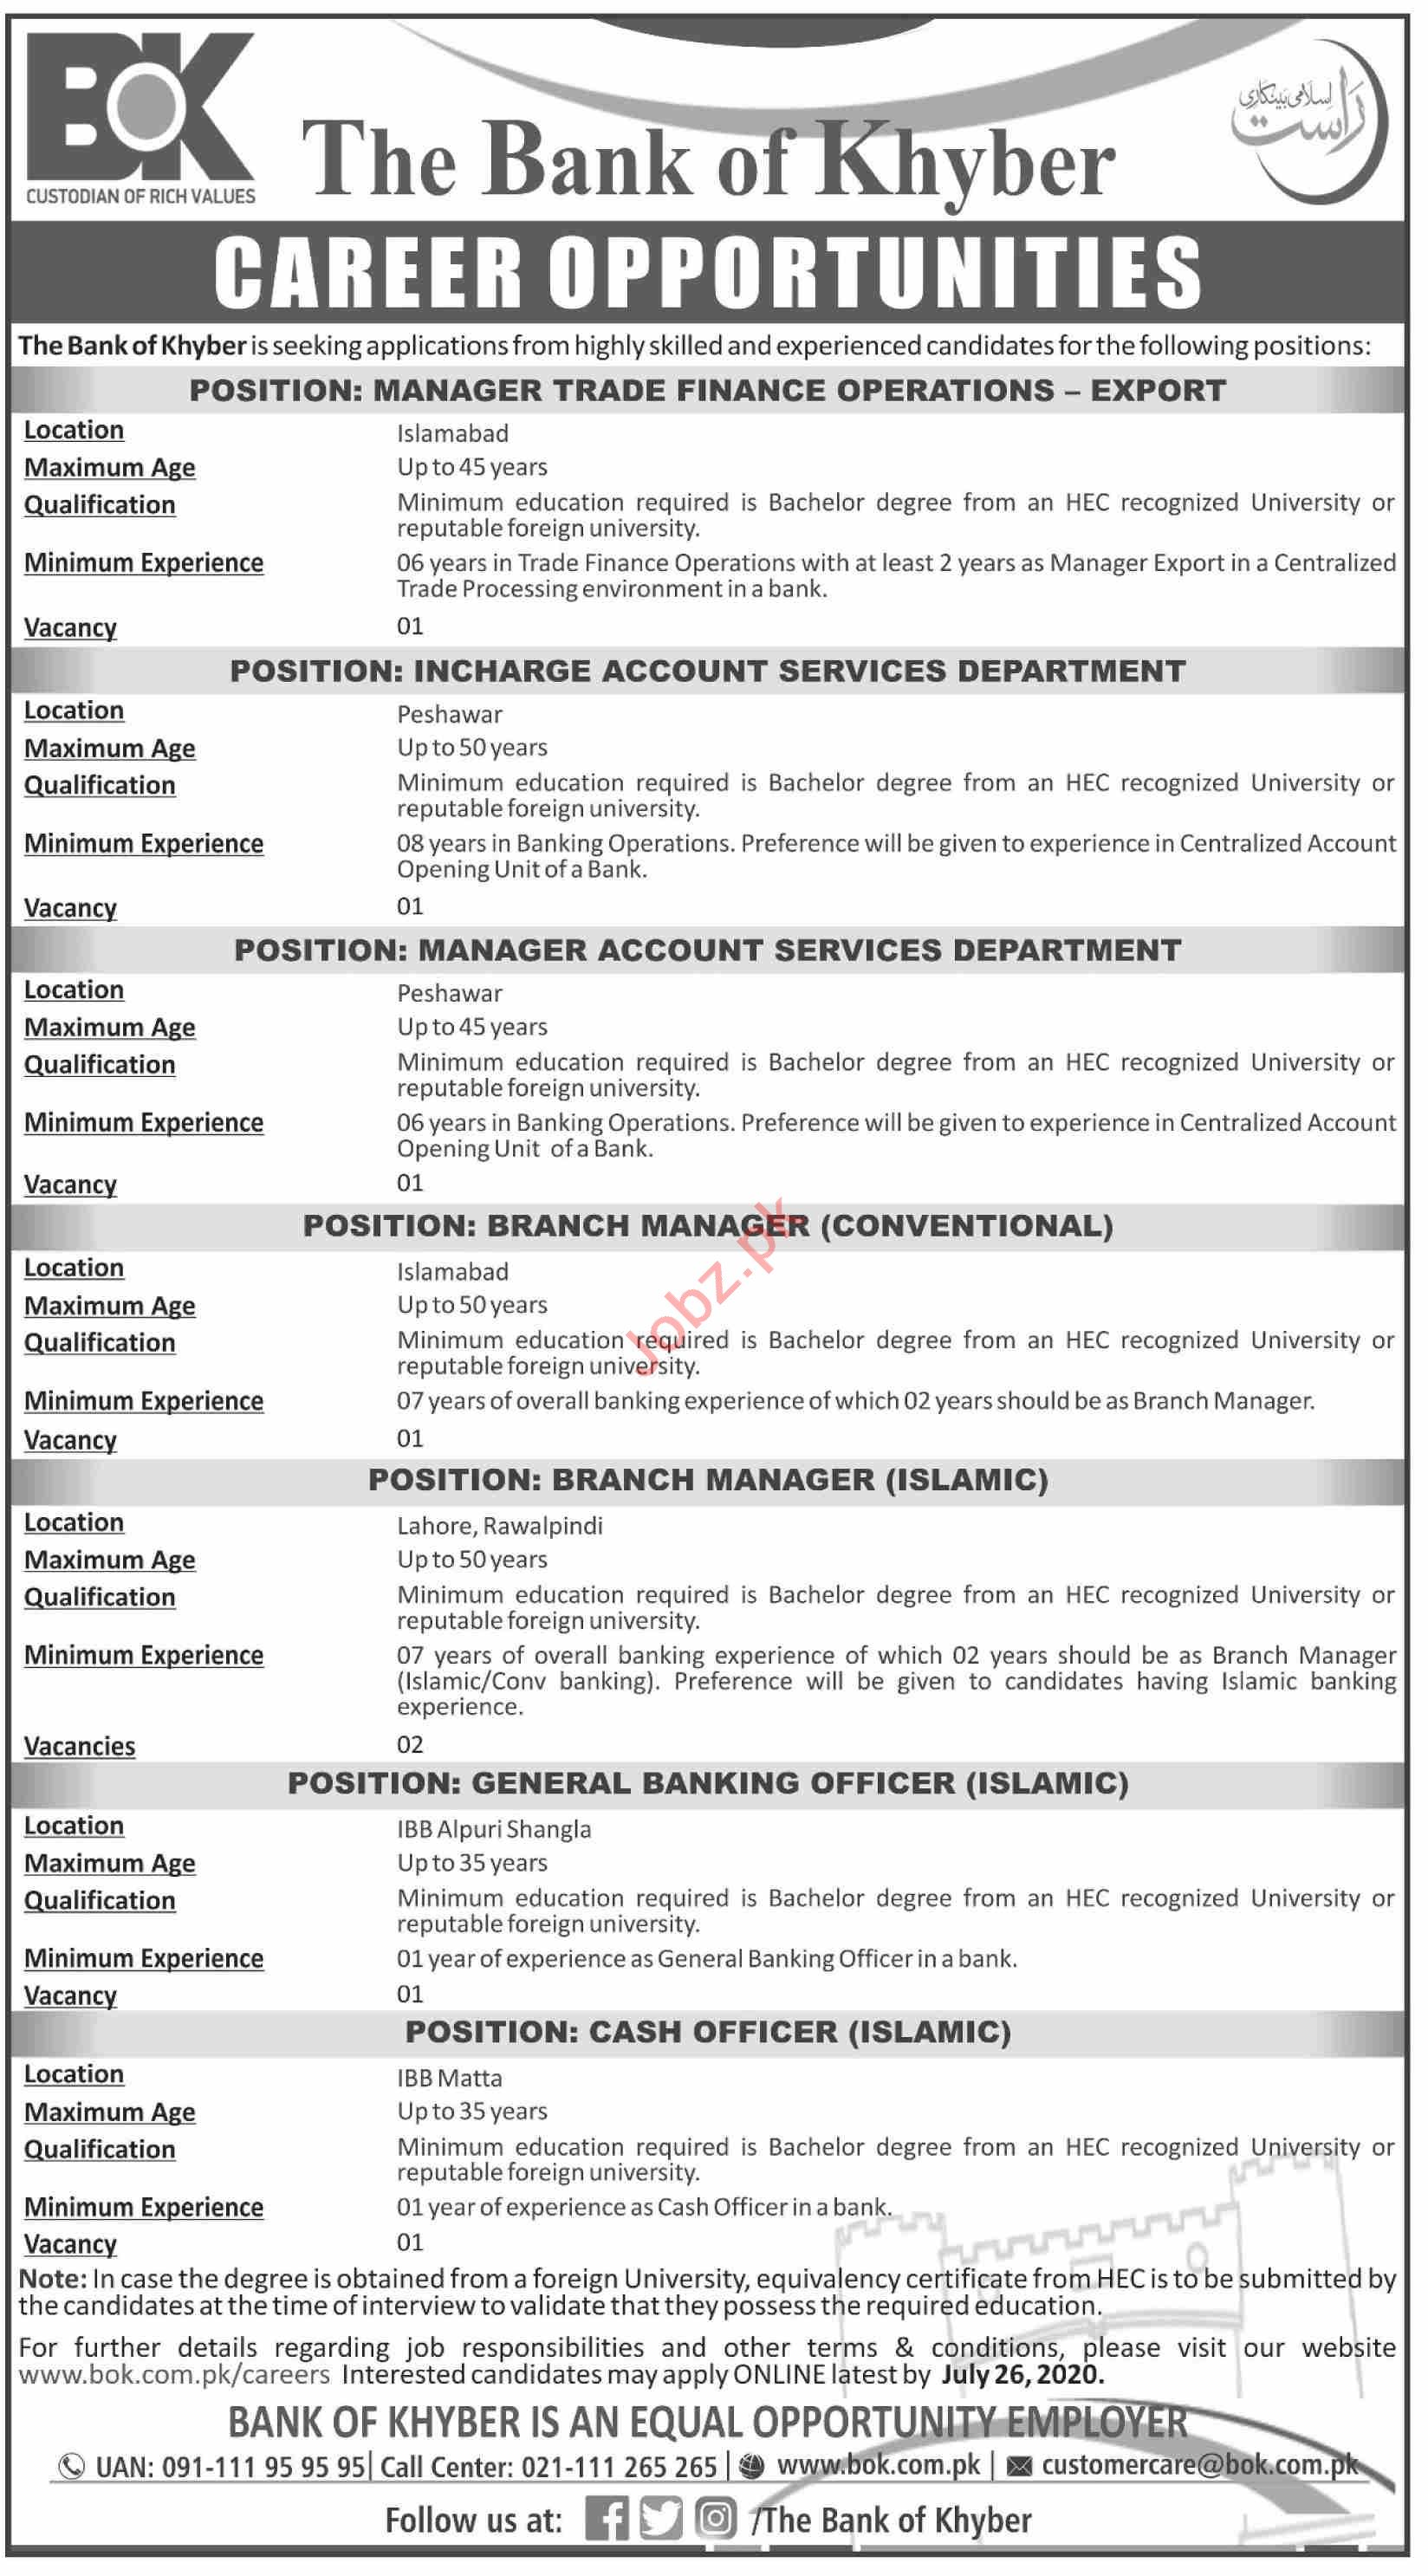 The Bank of Khyber BOK Jobs 2020 for Managers & Cash Officer